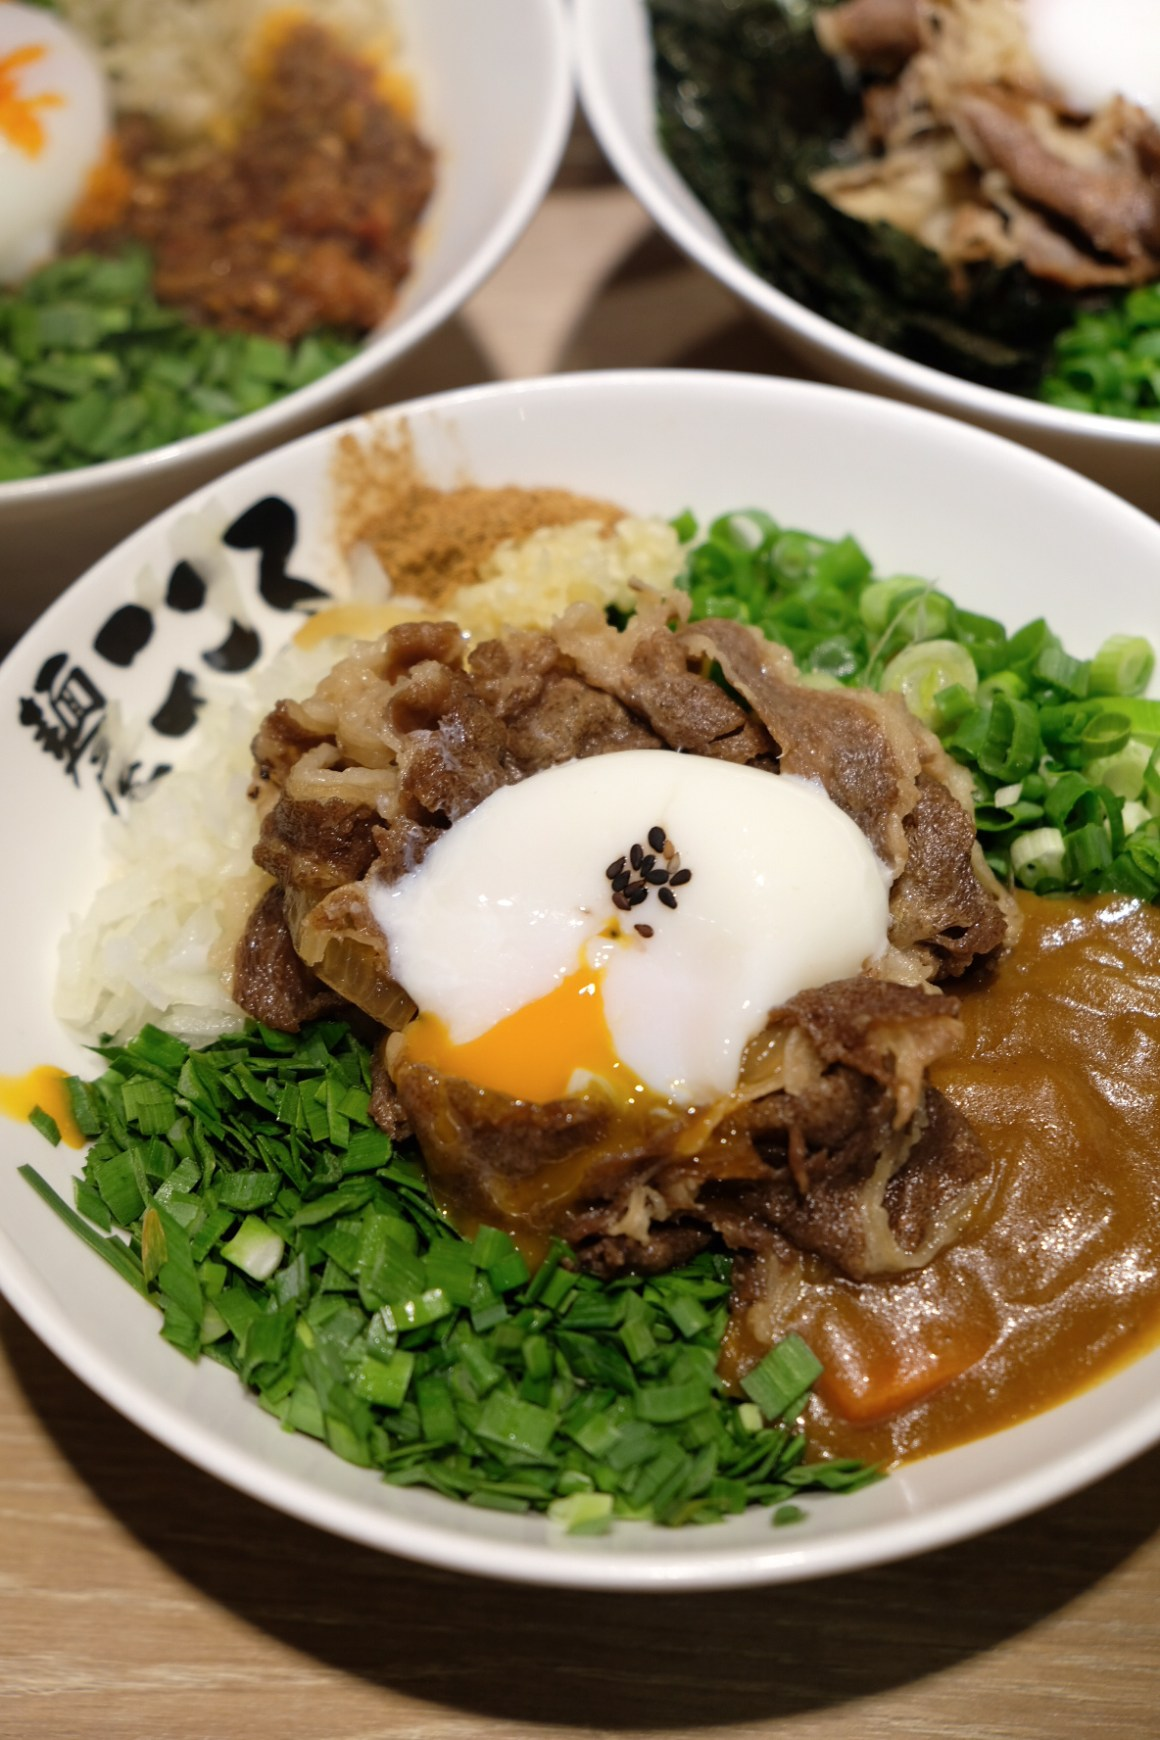 Menya Kokoro New Items - Curry Beef Maze Don ($15.80)